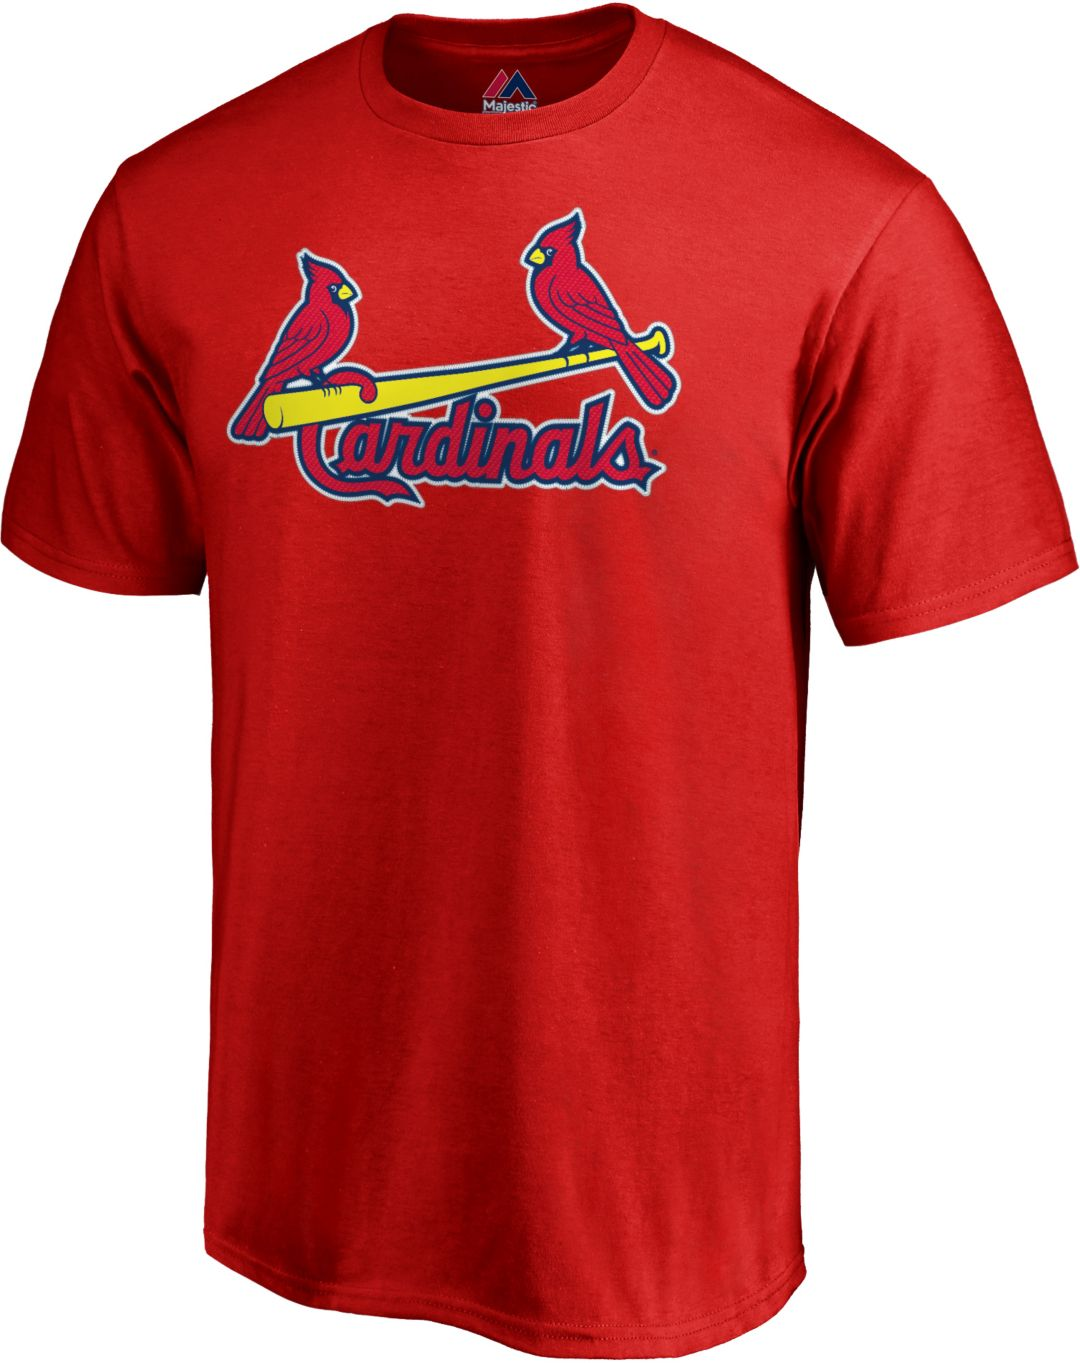 5659d795 Majestic Men's St. Louis Cardinals Paul Goldschmidt #46 Red T-Shirt